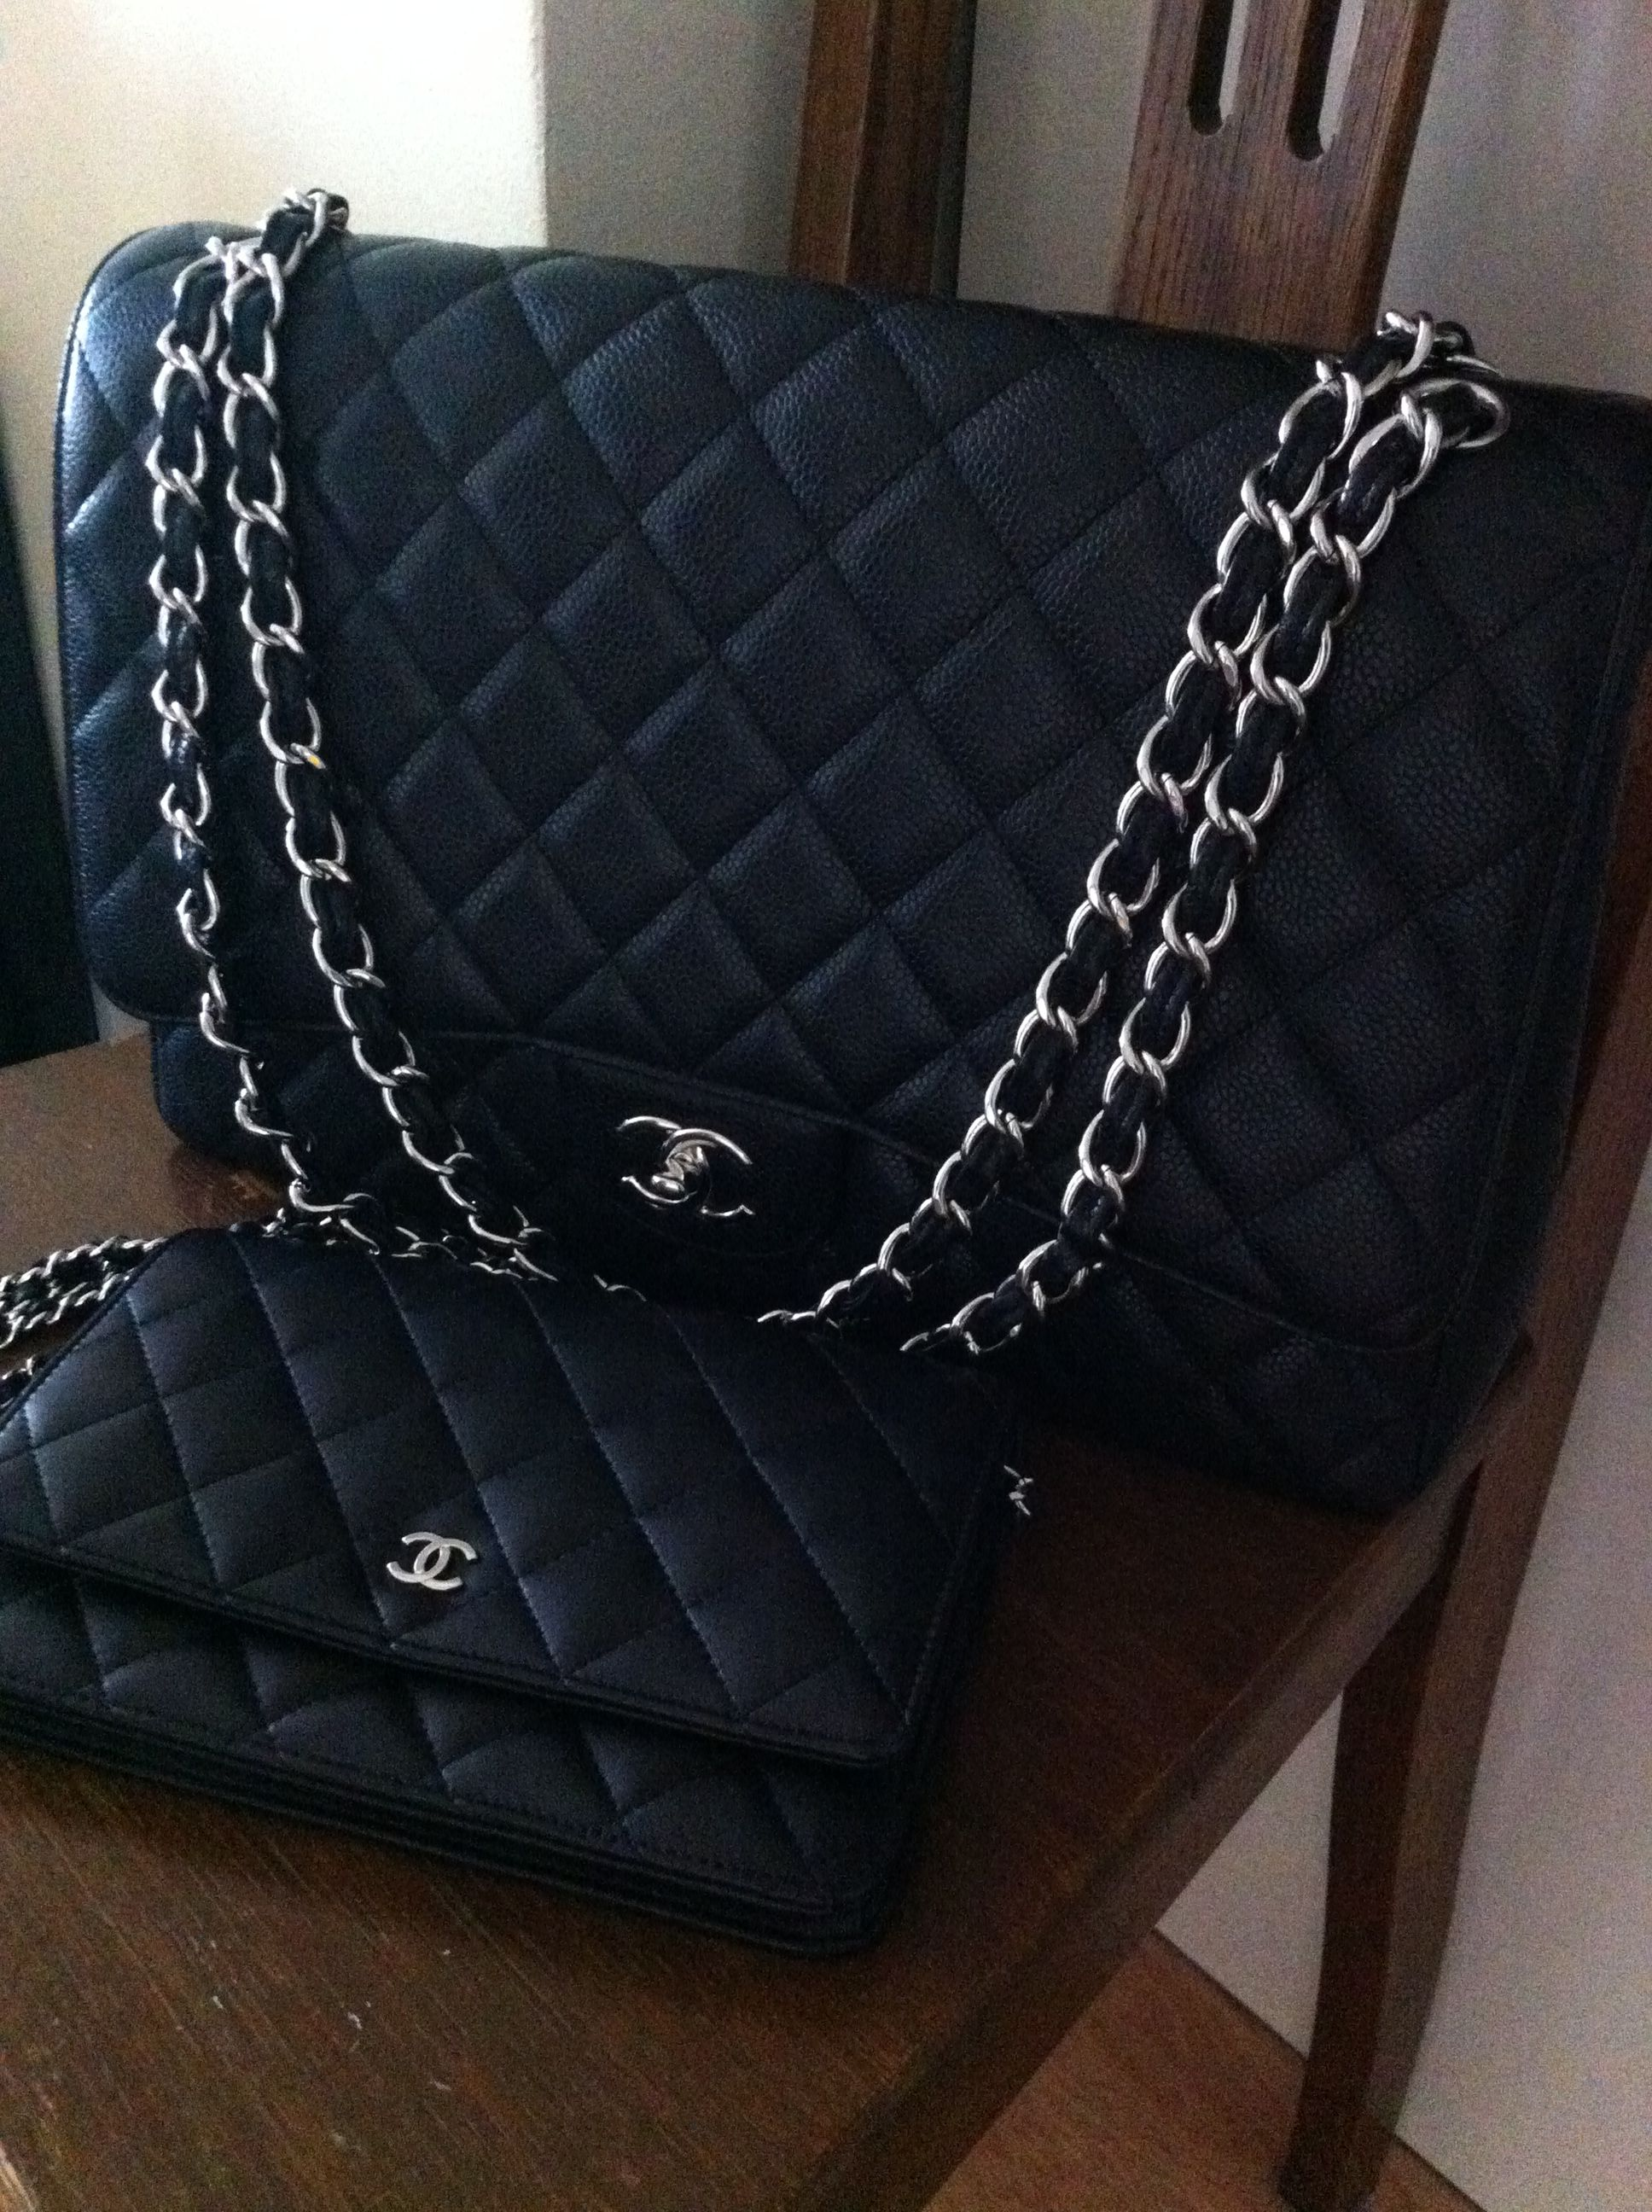 d864f9fbb428 My Chanel maxi classic flap in caviar leather with silver hardware and  wallet on a chain in lambskin with silver hardware. Love them!